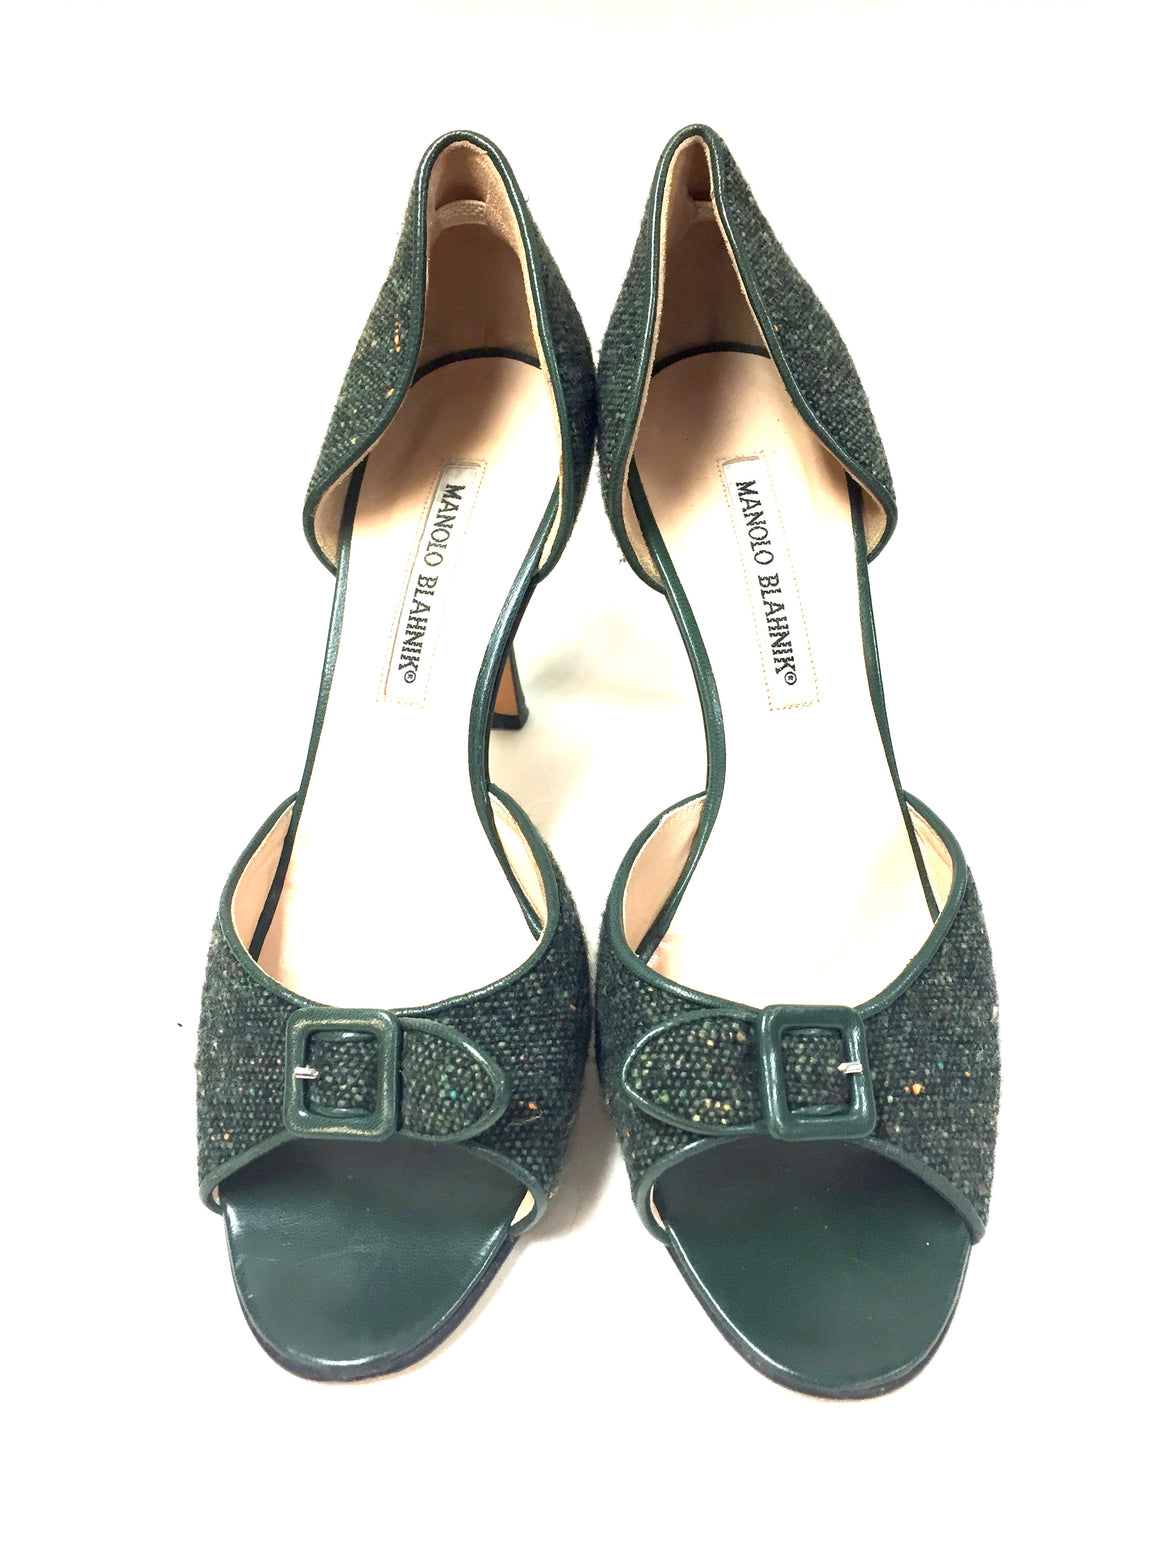 MANOLO BLAHNIK Green Tweed Open-Toe D'Orsay Hi-Heel Pumps  Size: 39 / 9